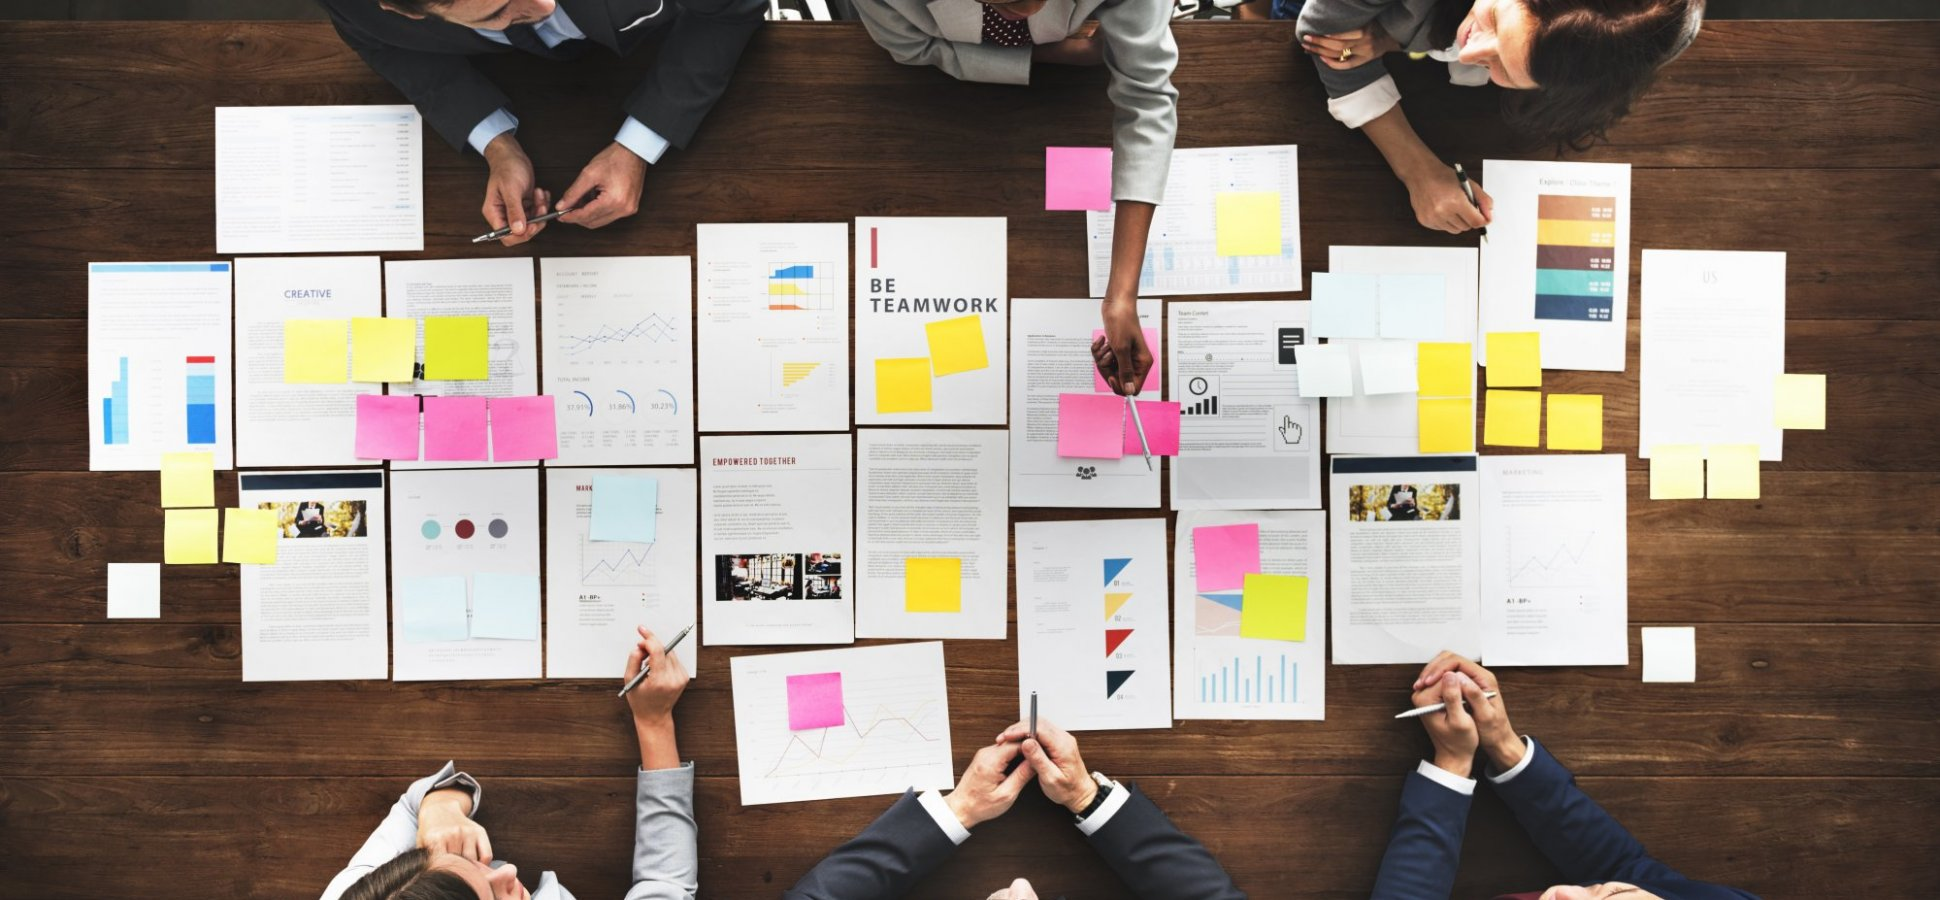 The Simple Organizational Error That Cost My Company Over $100,000